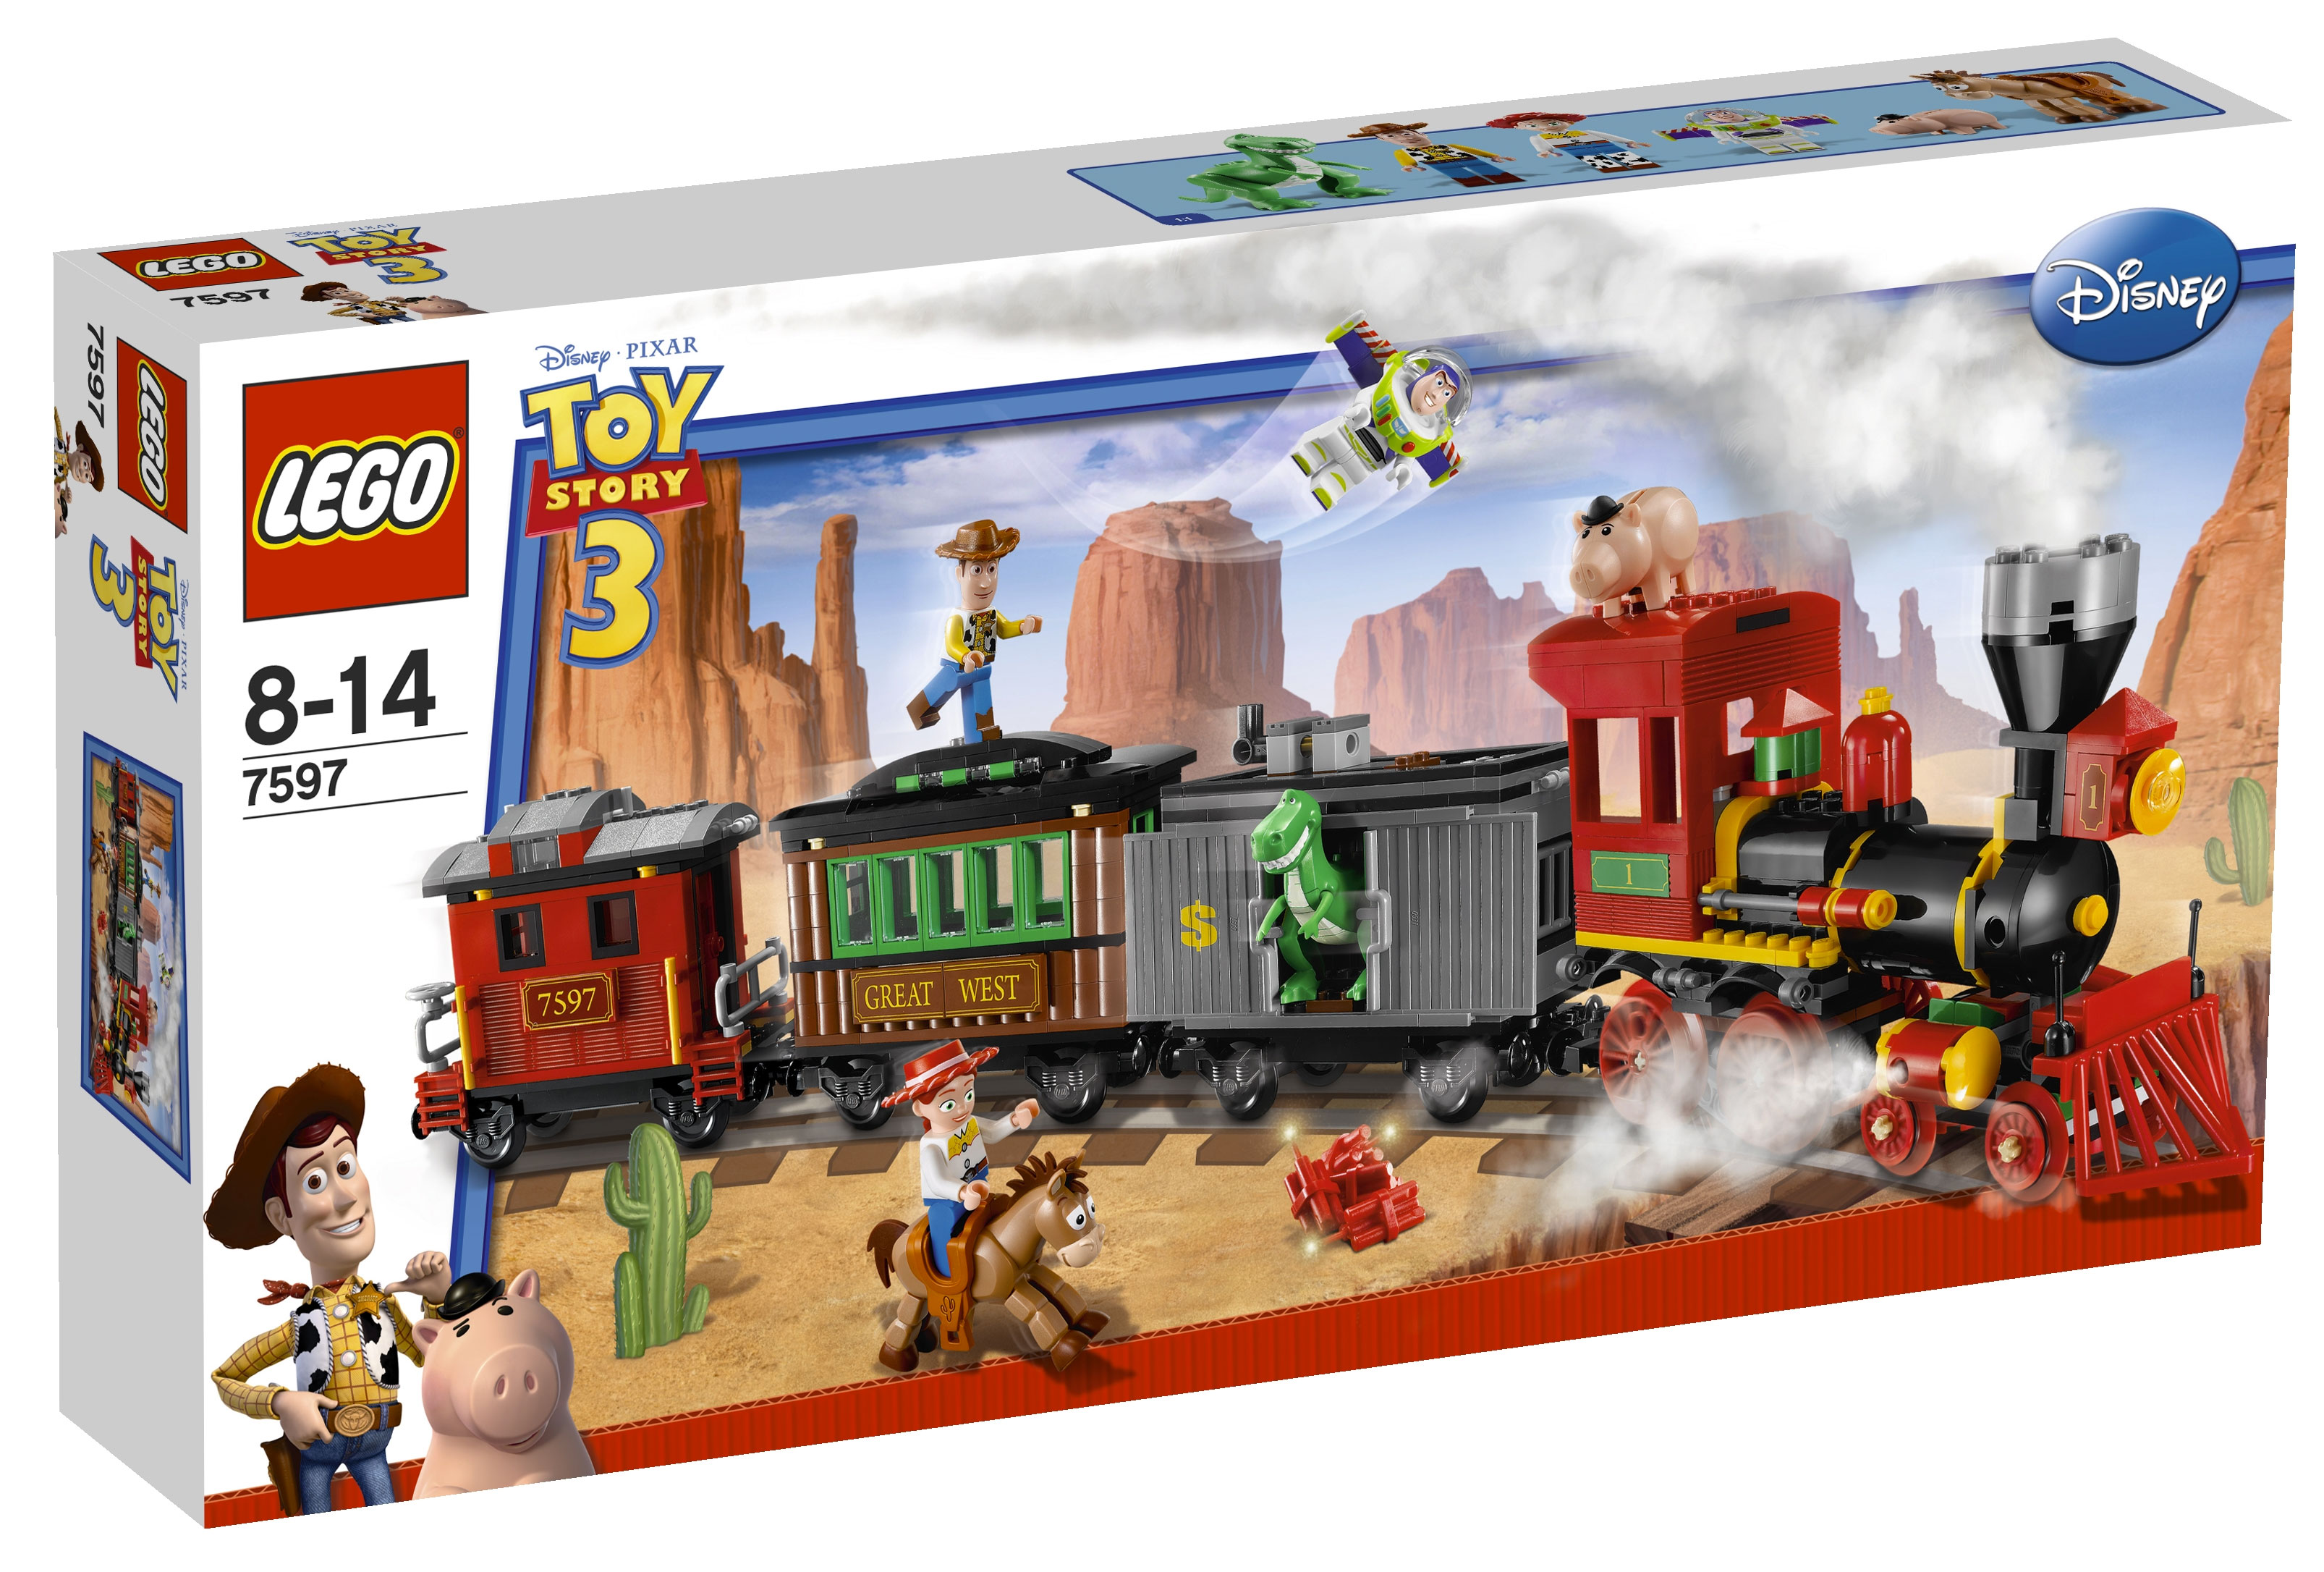 Brickfinder lego toy story sets rumoured as toy story 4 - Lego toys story ...